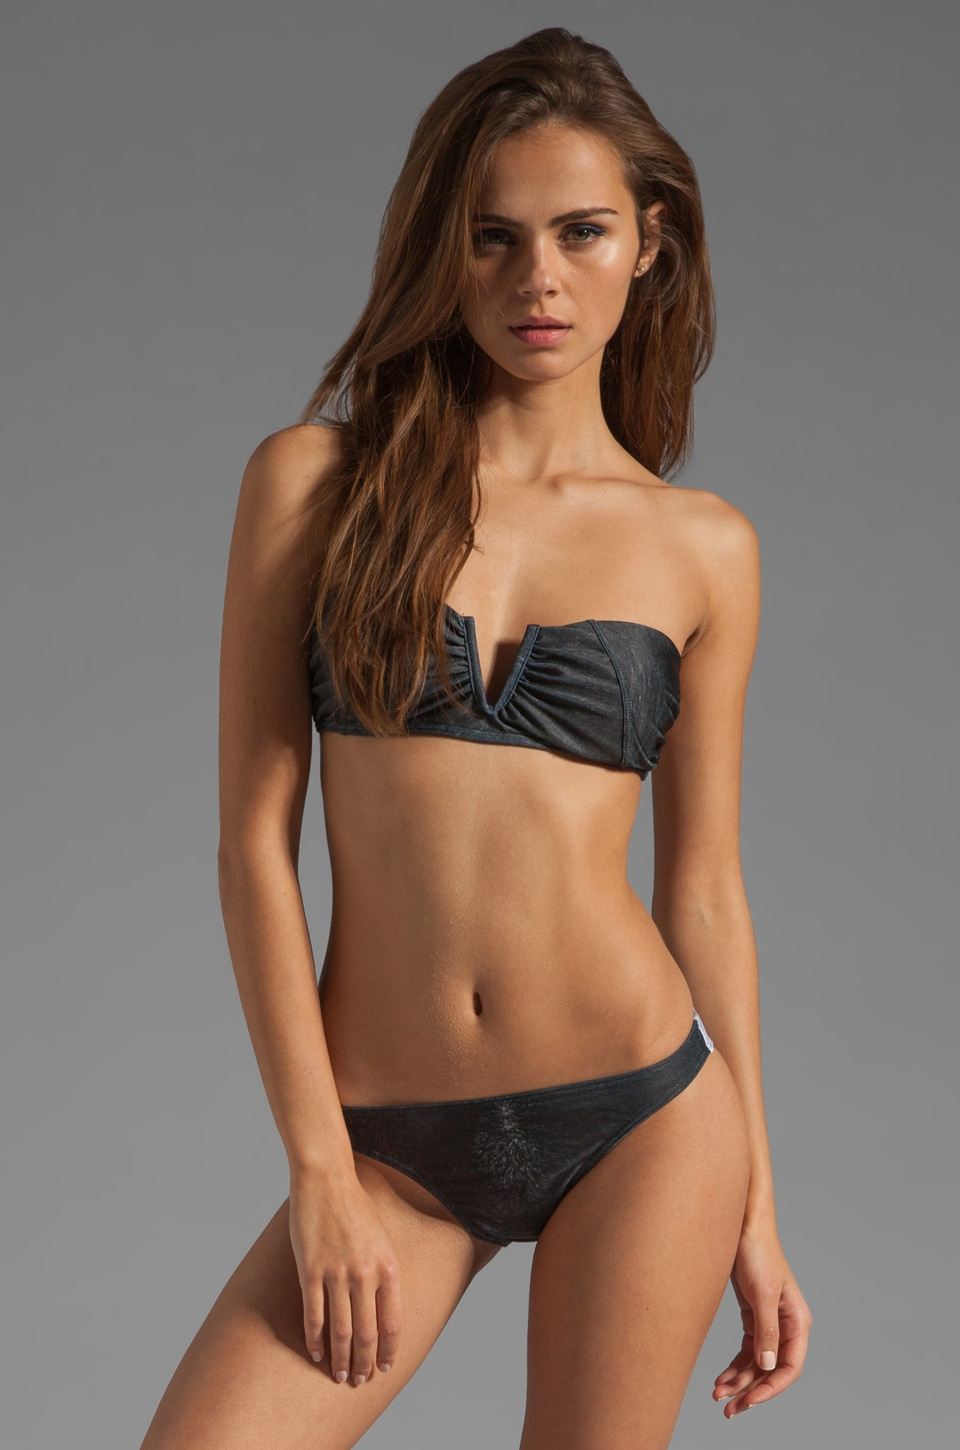 We Are Handsome Bandeau Bikini in Gentle Warrior